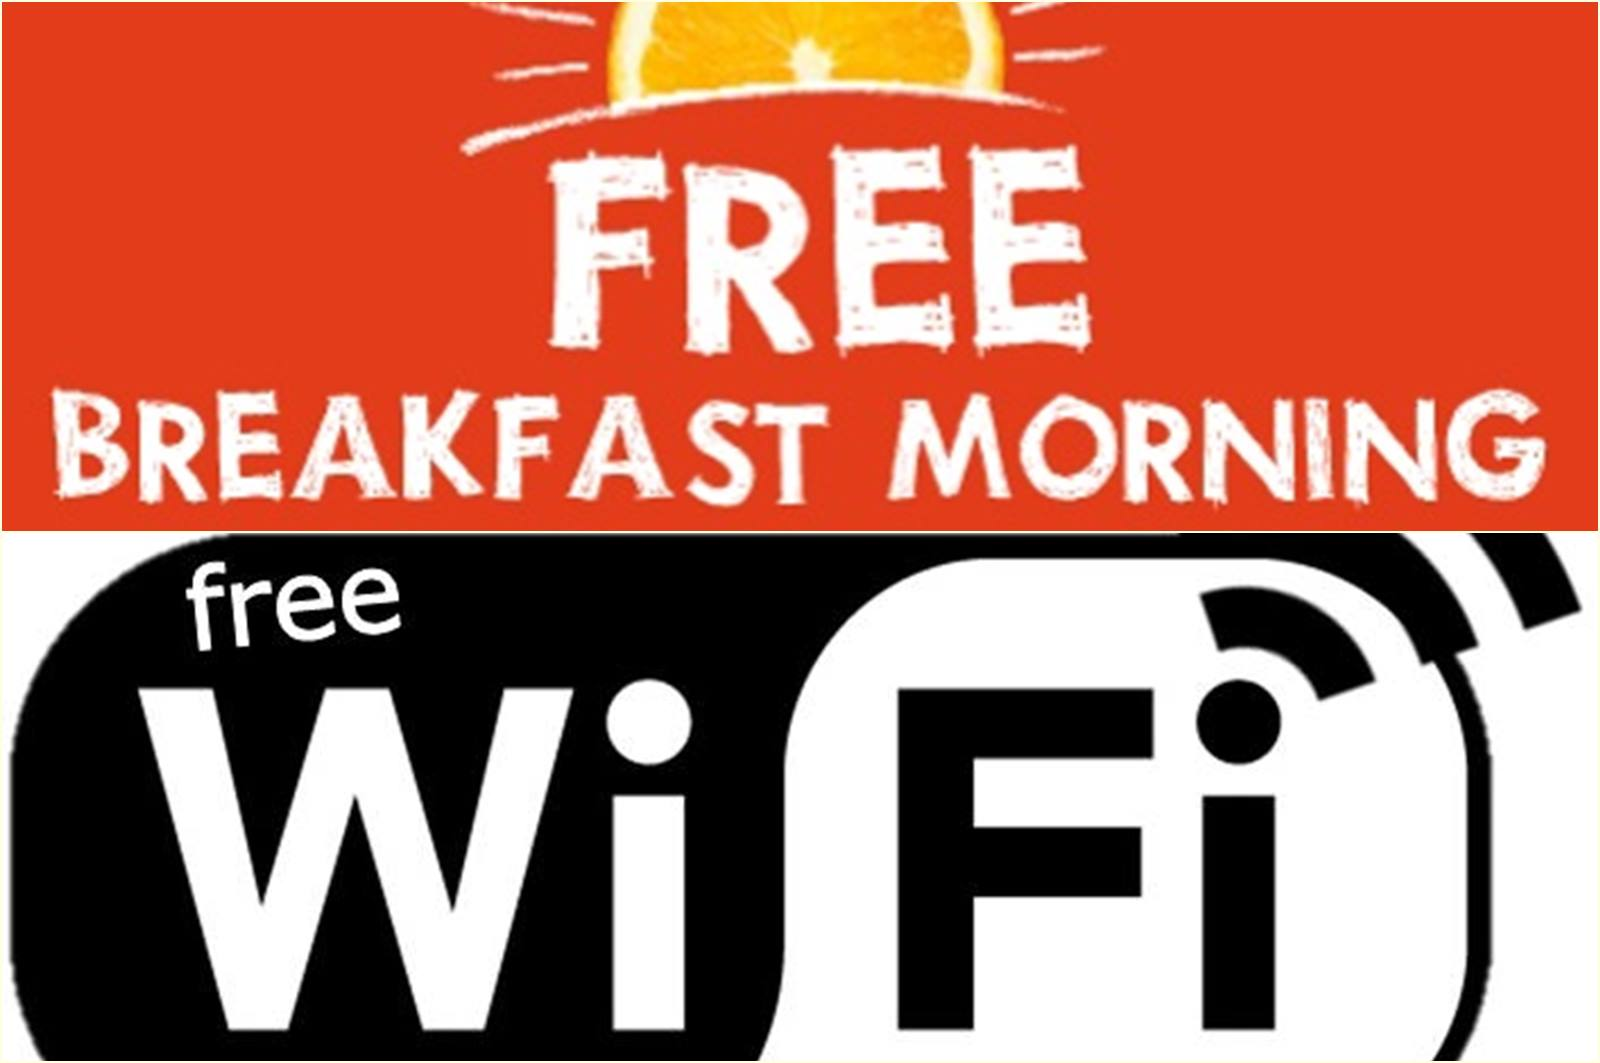 Free Wifi VS Free Breakfast?